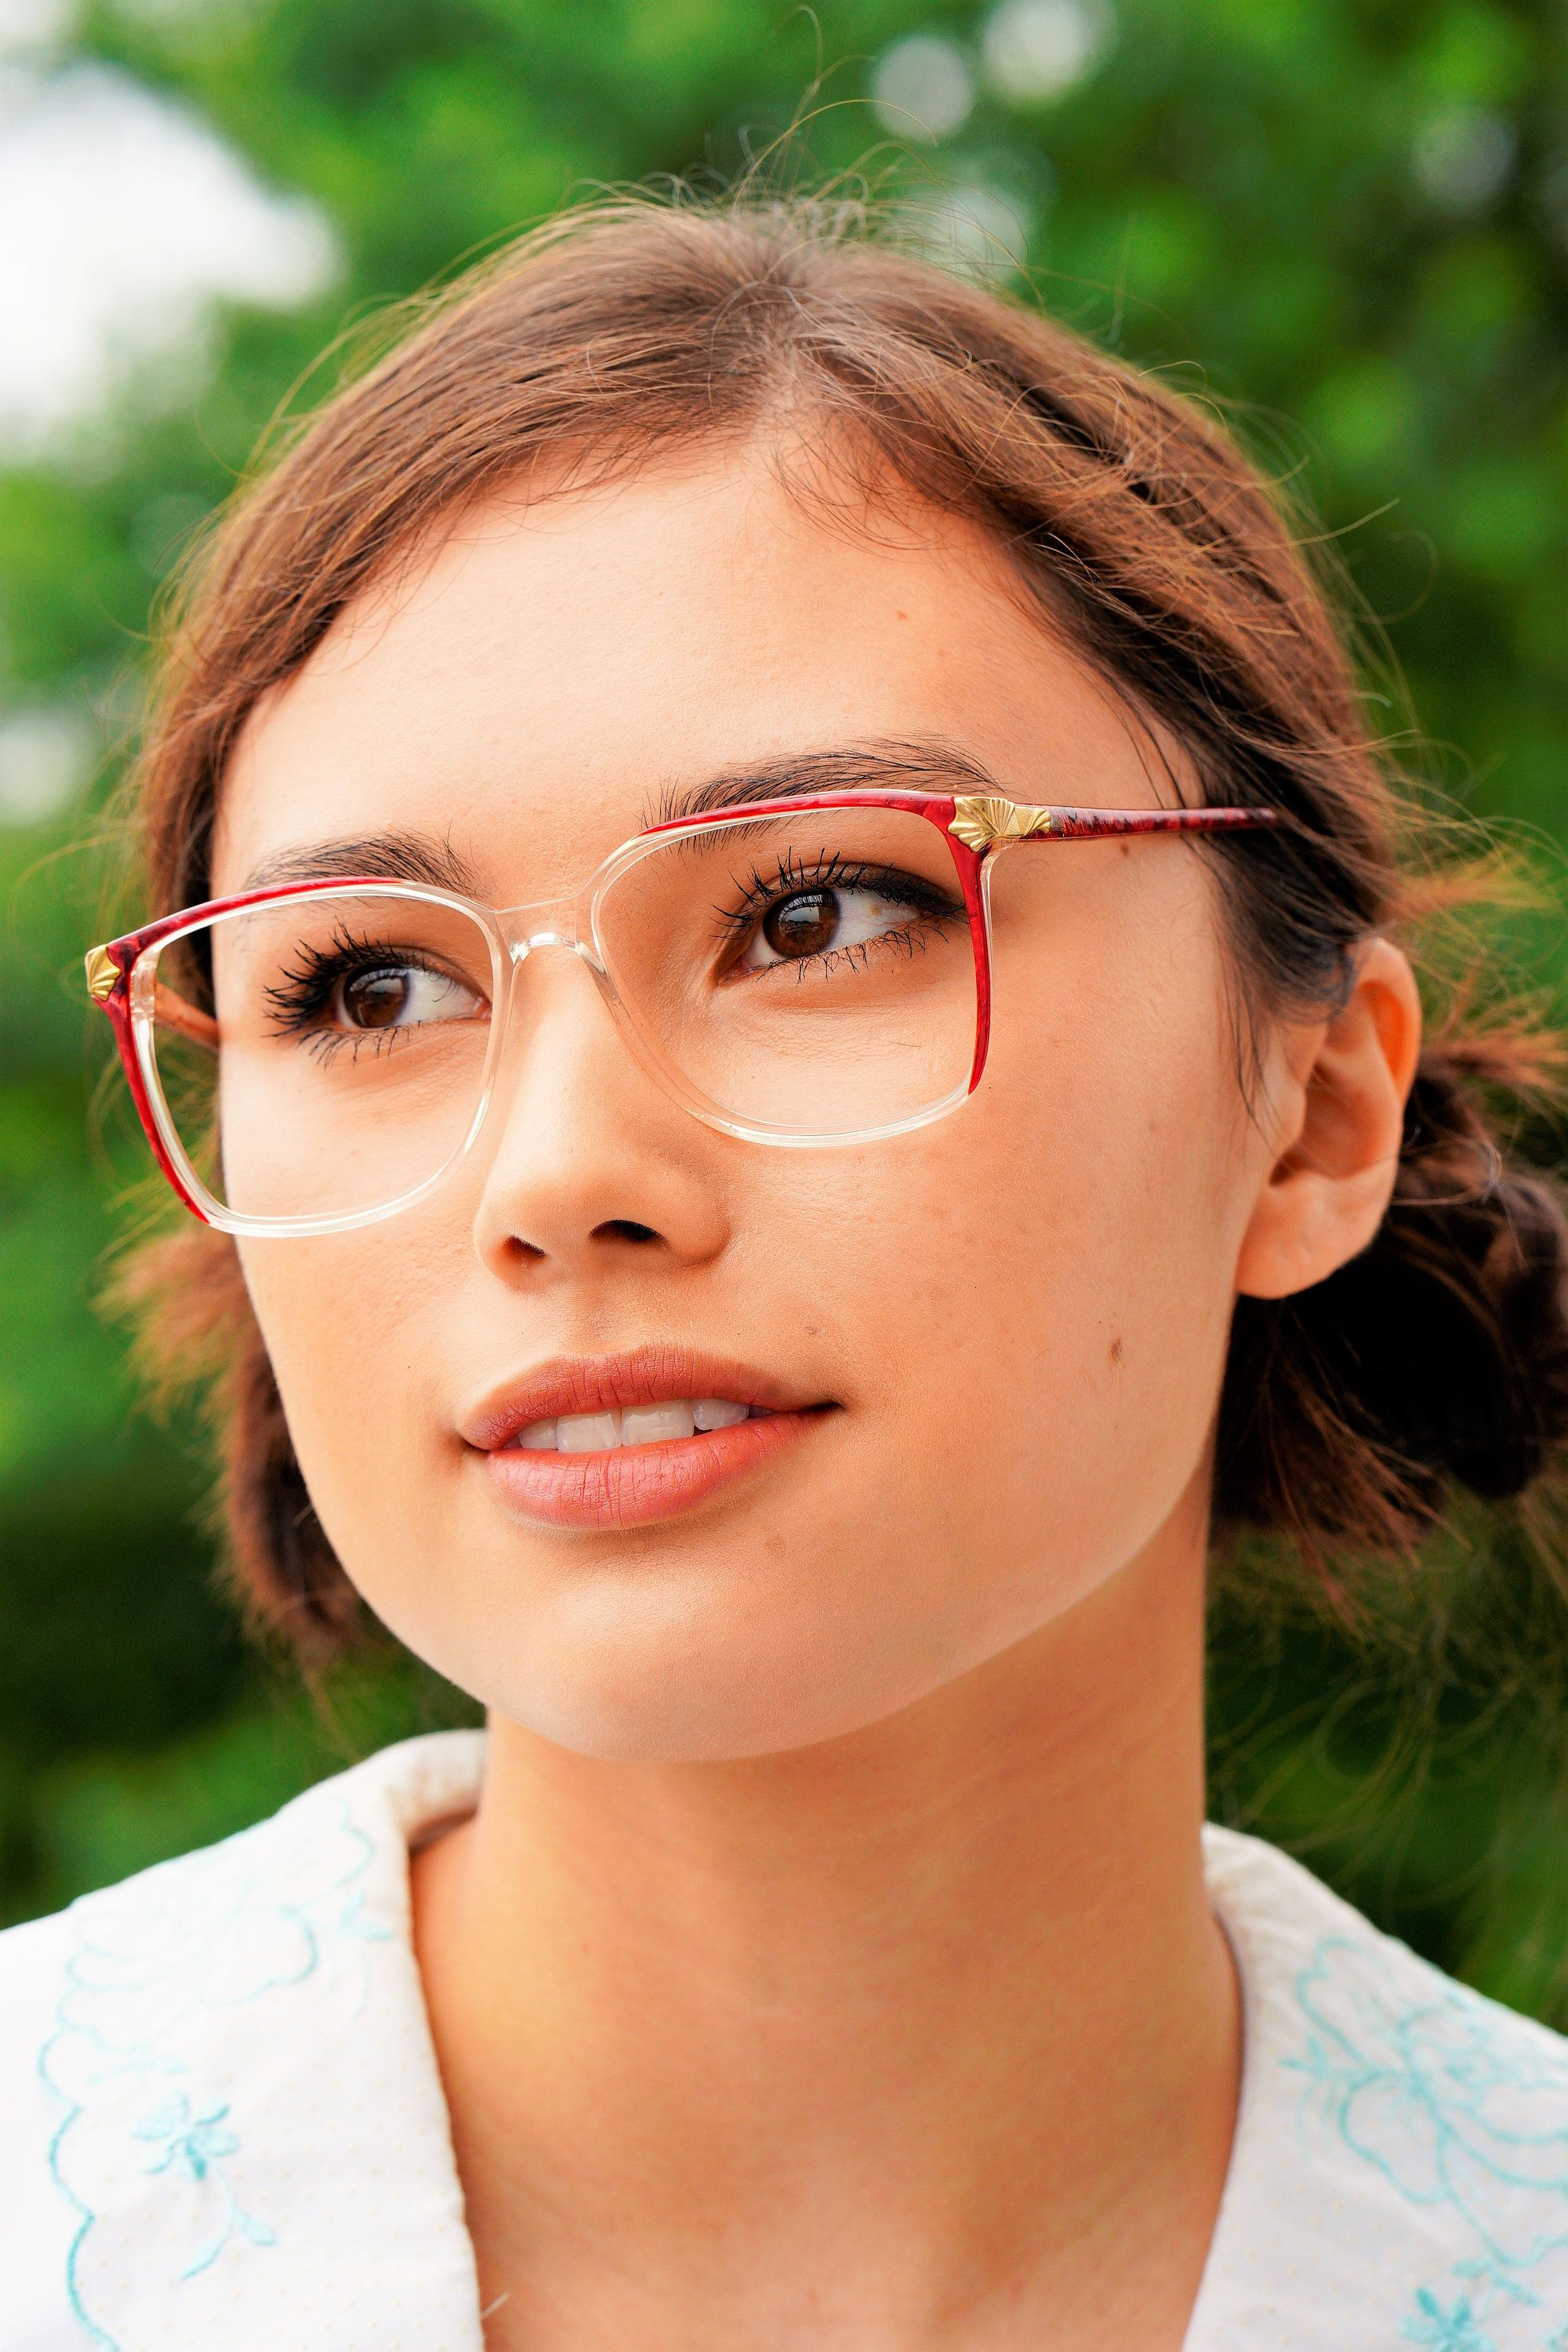 9952c10ec58 Vintage 1990s Eyeglass Translucent New Old Stock Frames Marble red color  splash and clear Glasses by Monet Made In Hong Kong by hisandhervintage on  ...